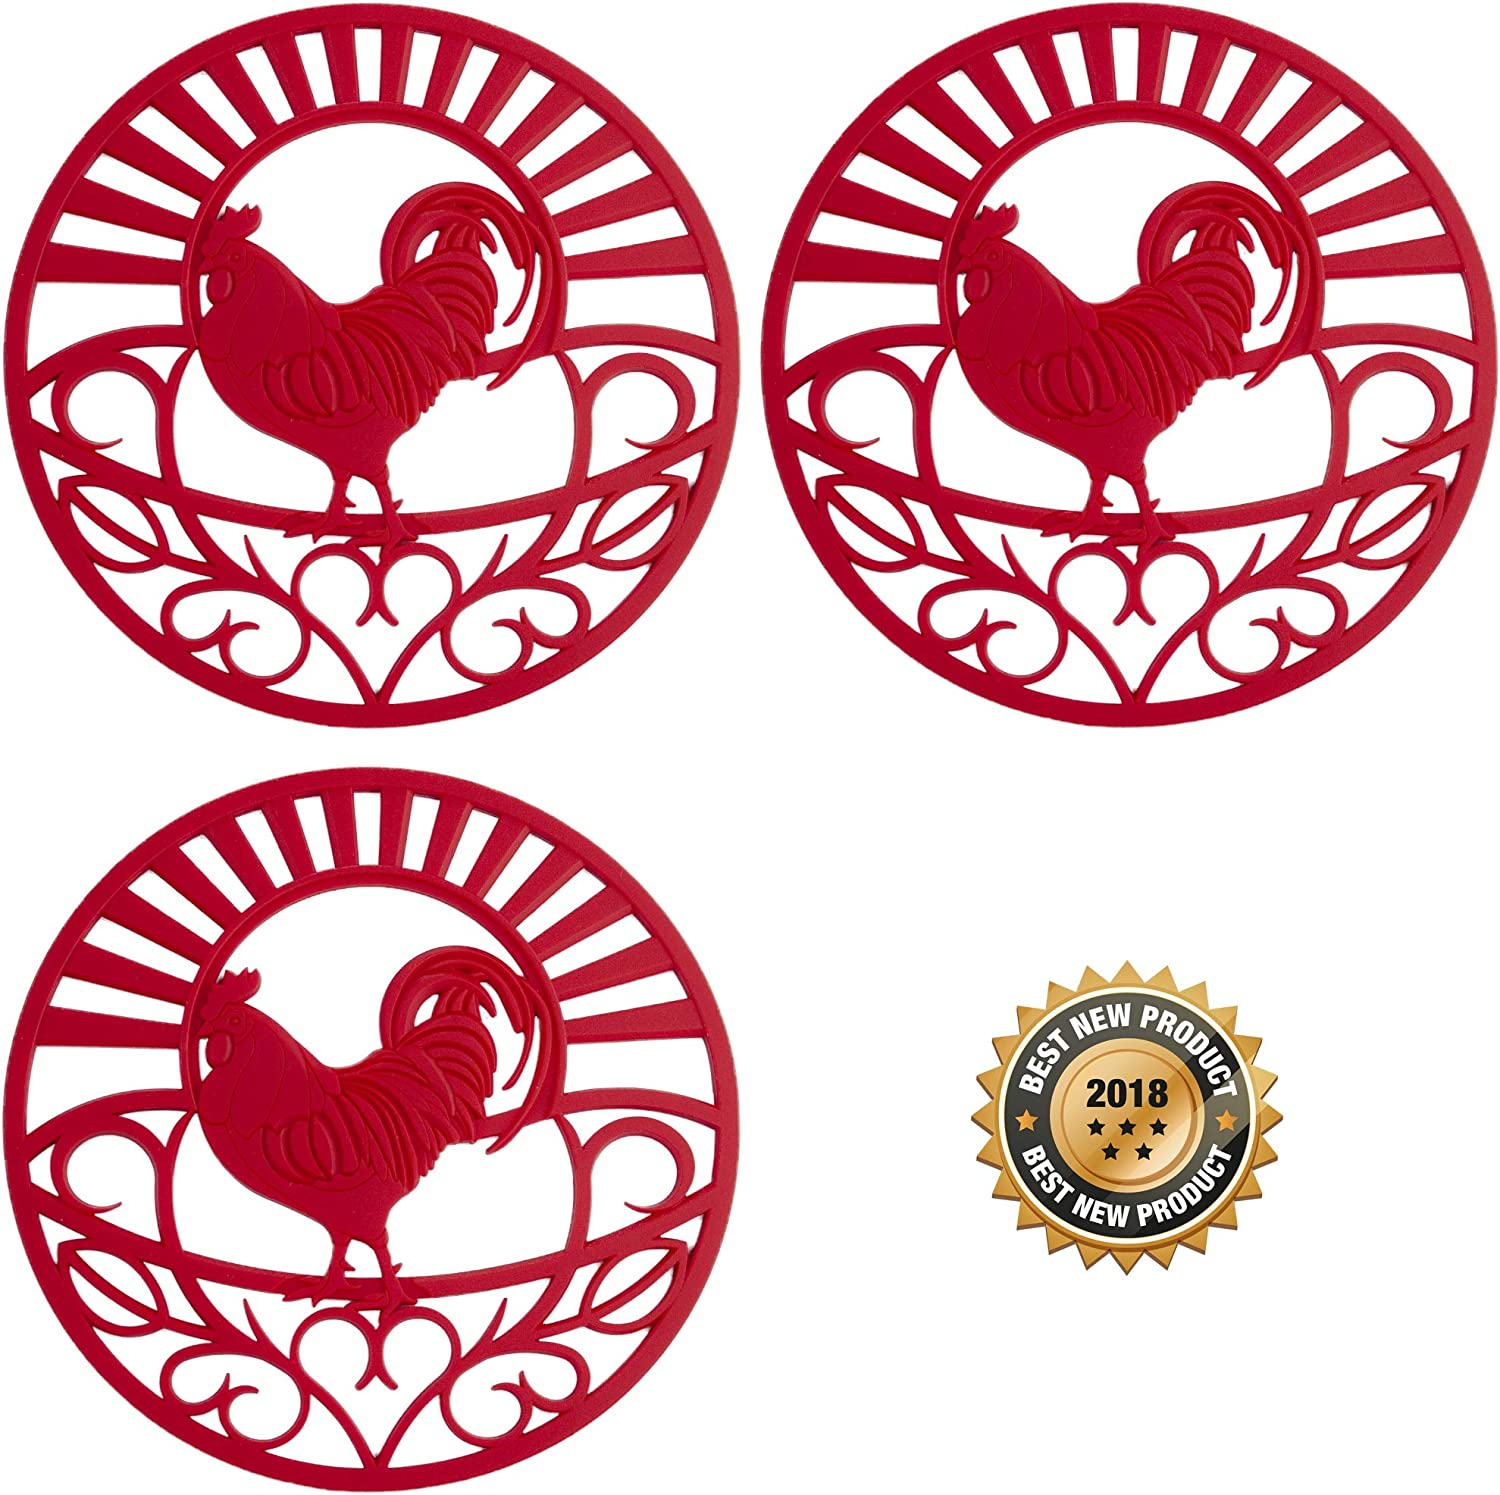 "Silicone Trivet Set For Hot Dishes, Pots & Pans. These Kitchen Hot Pads""Country Rooster"" Design (Symbol of Prosperity & Good Luck) Mimics Cast Iron Trivets (7.5 inch Round, Set of 3, Coral Red)"